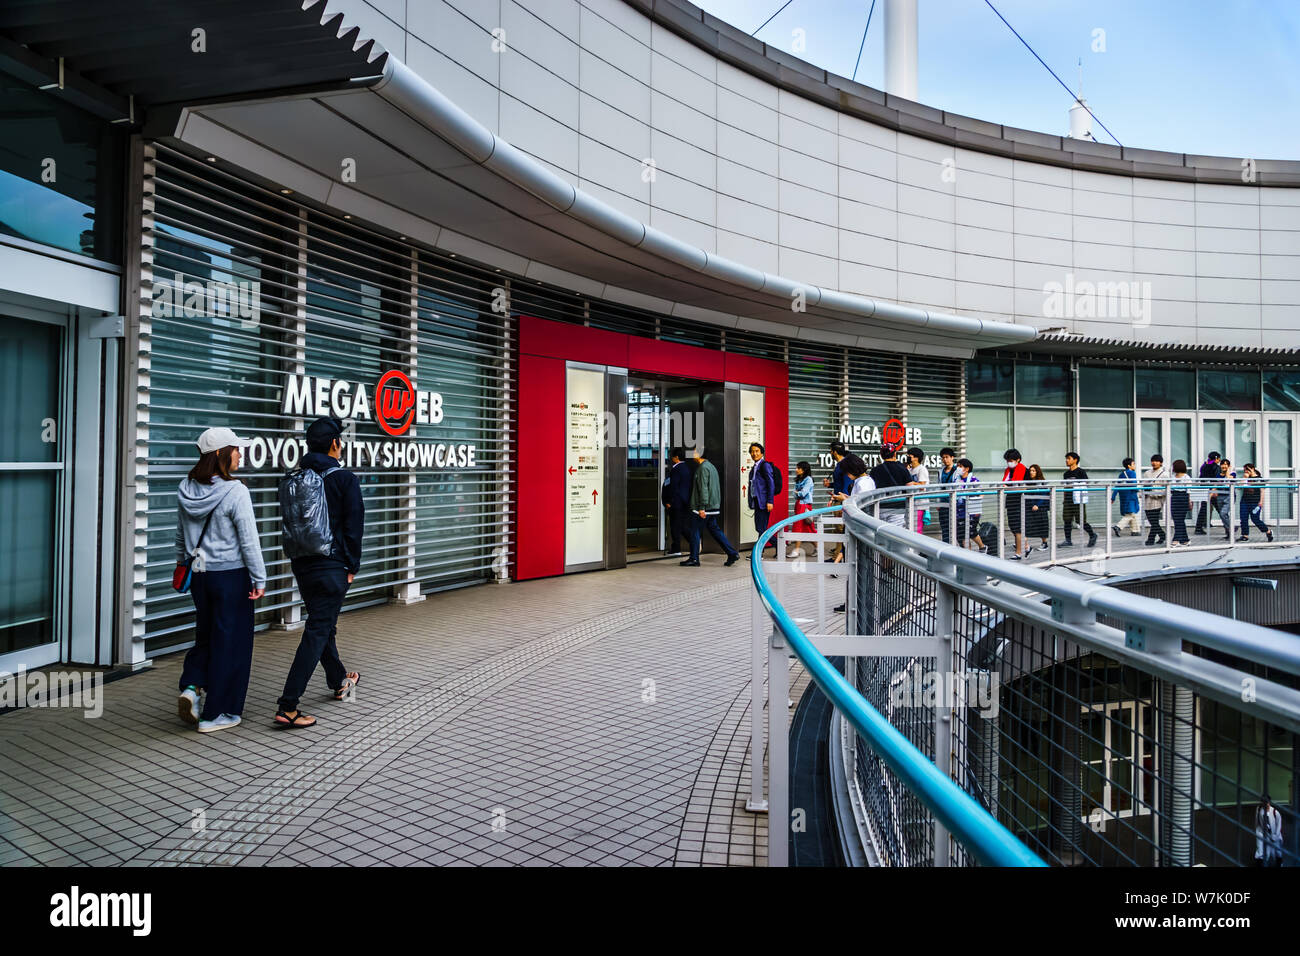 Tokyo, Japan - May 12, 2019: Toyota Mega Web, Museum & showroom featuring Toyota vehicles, concept cars, simulator experiences & test rides. Stock Photo